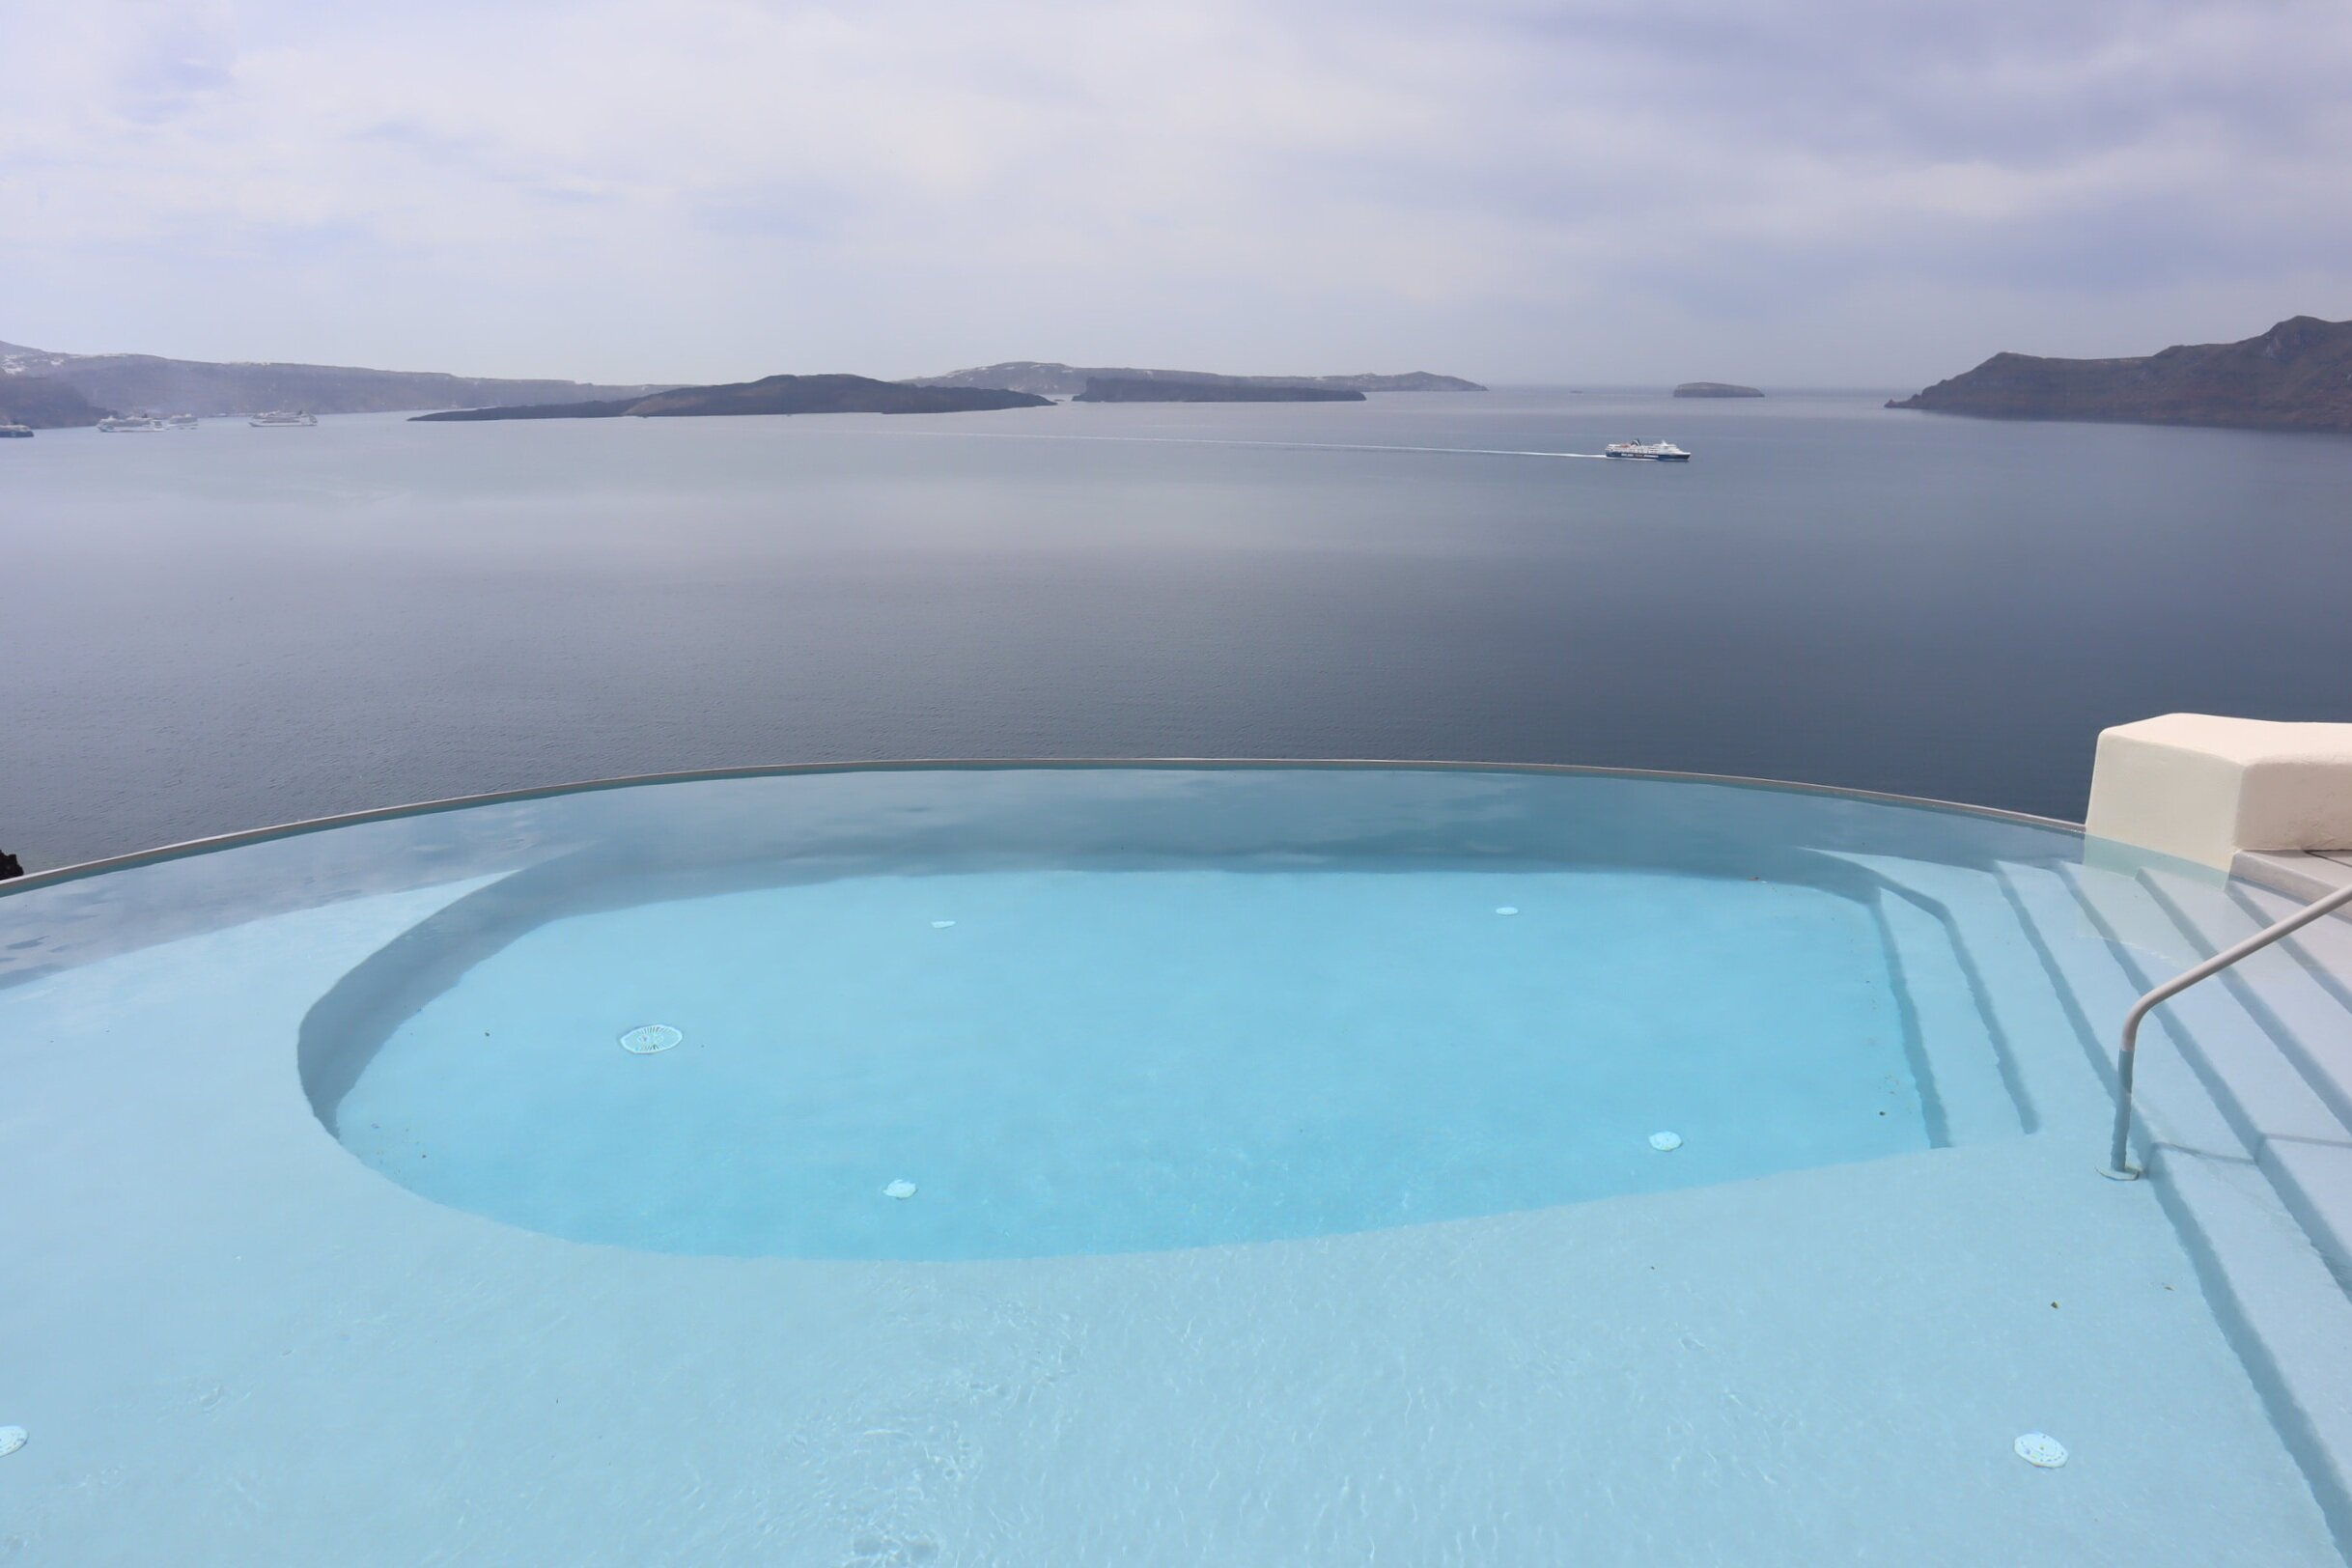 Mystique Santorini – Main pool